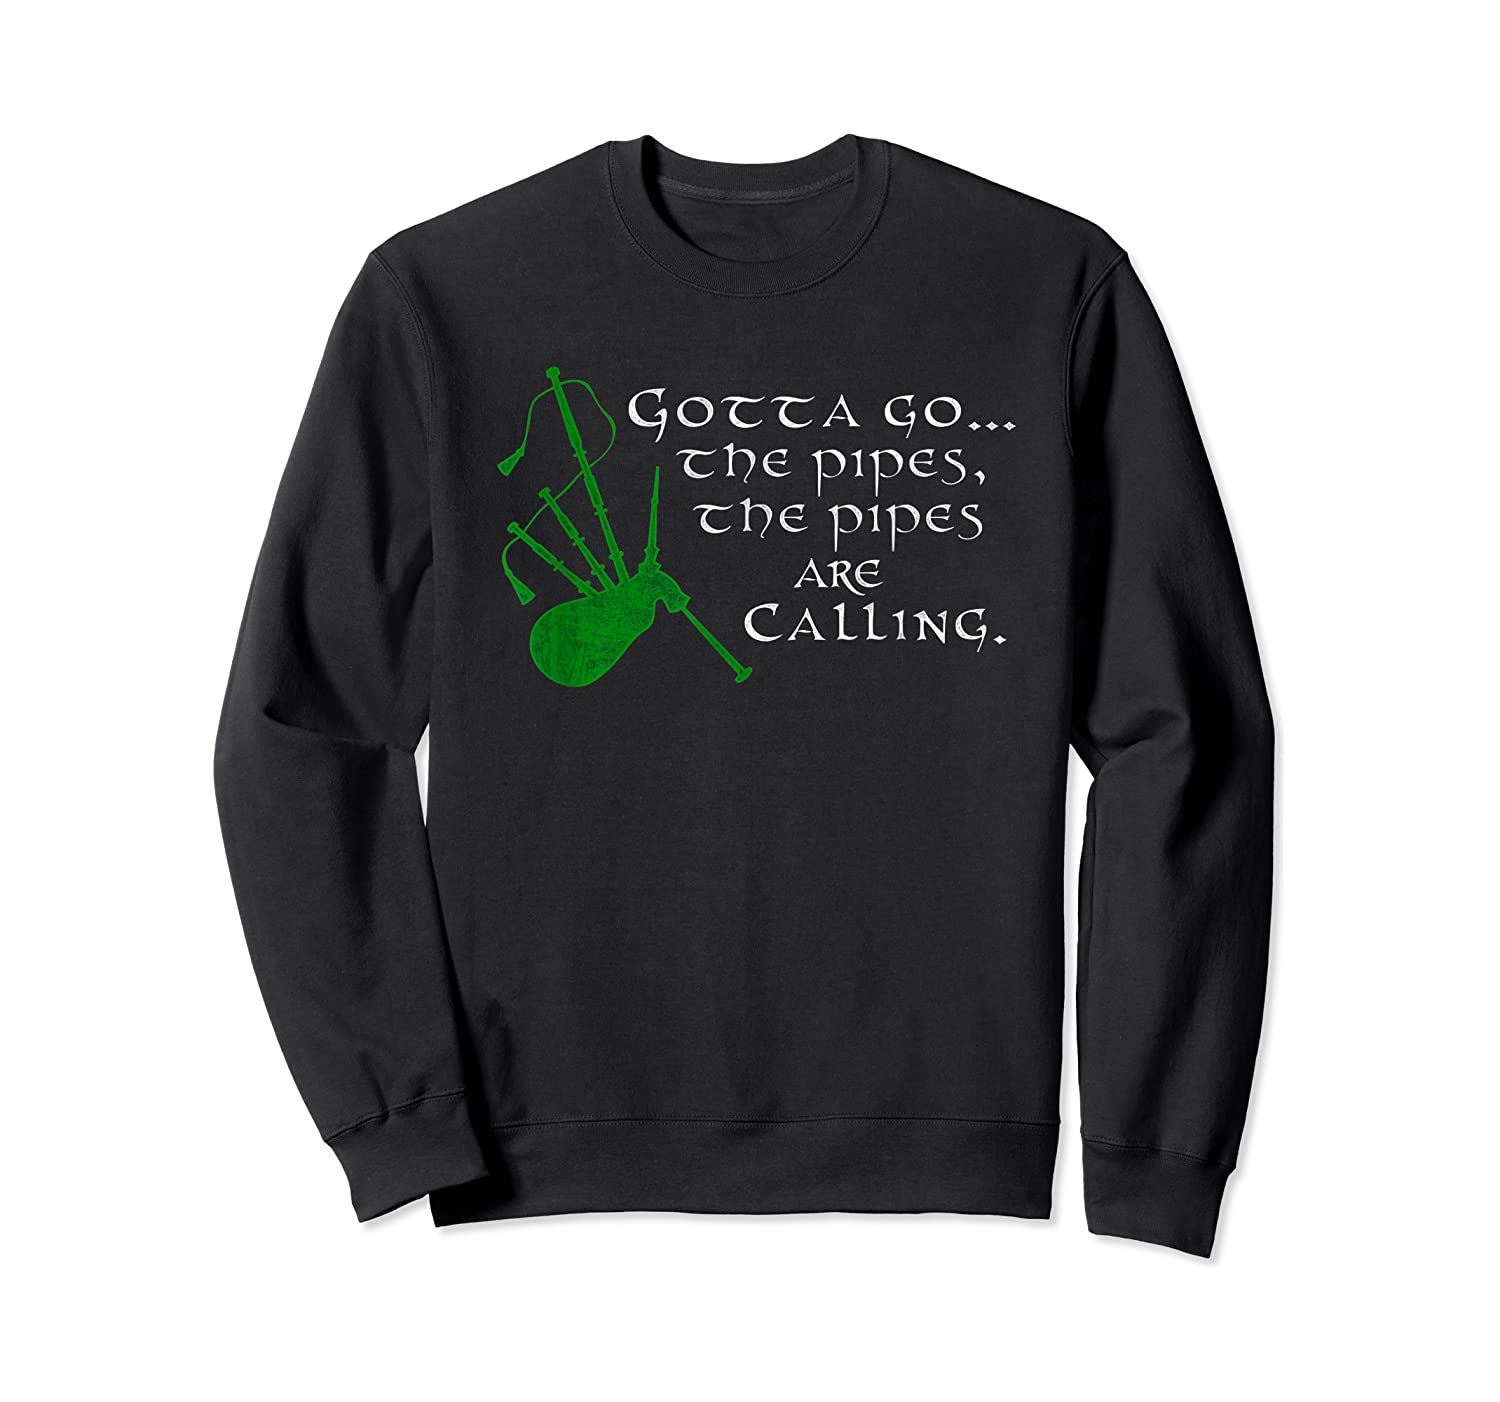 Funny Scottish Quote Gotta Go The Pipes Are Calling Bagpipes T-shirt Crewneck Sweater